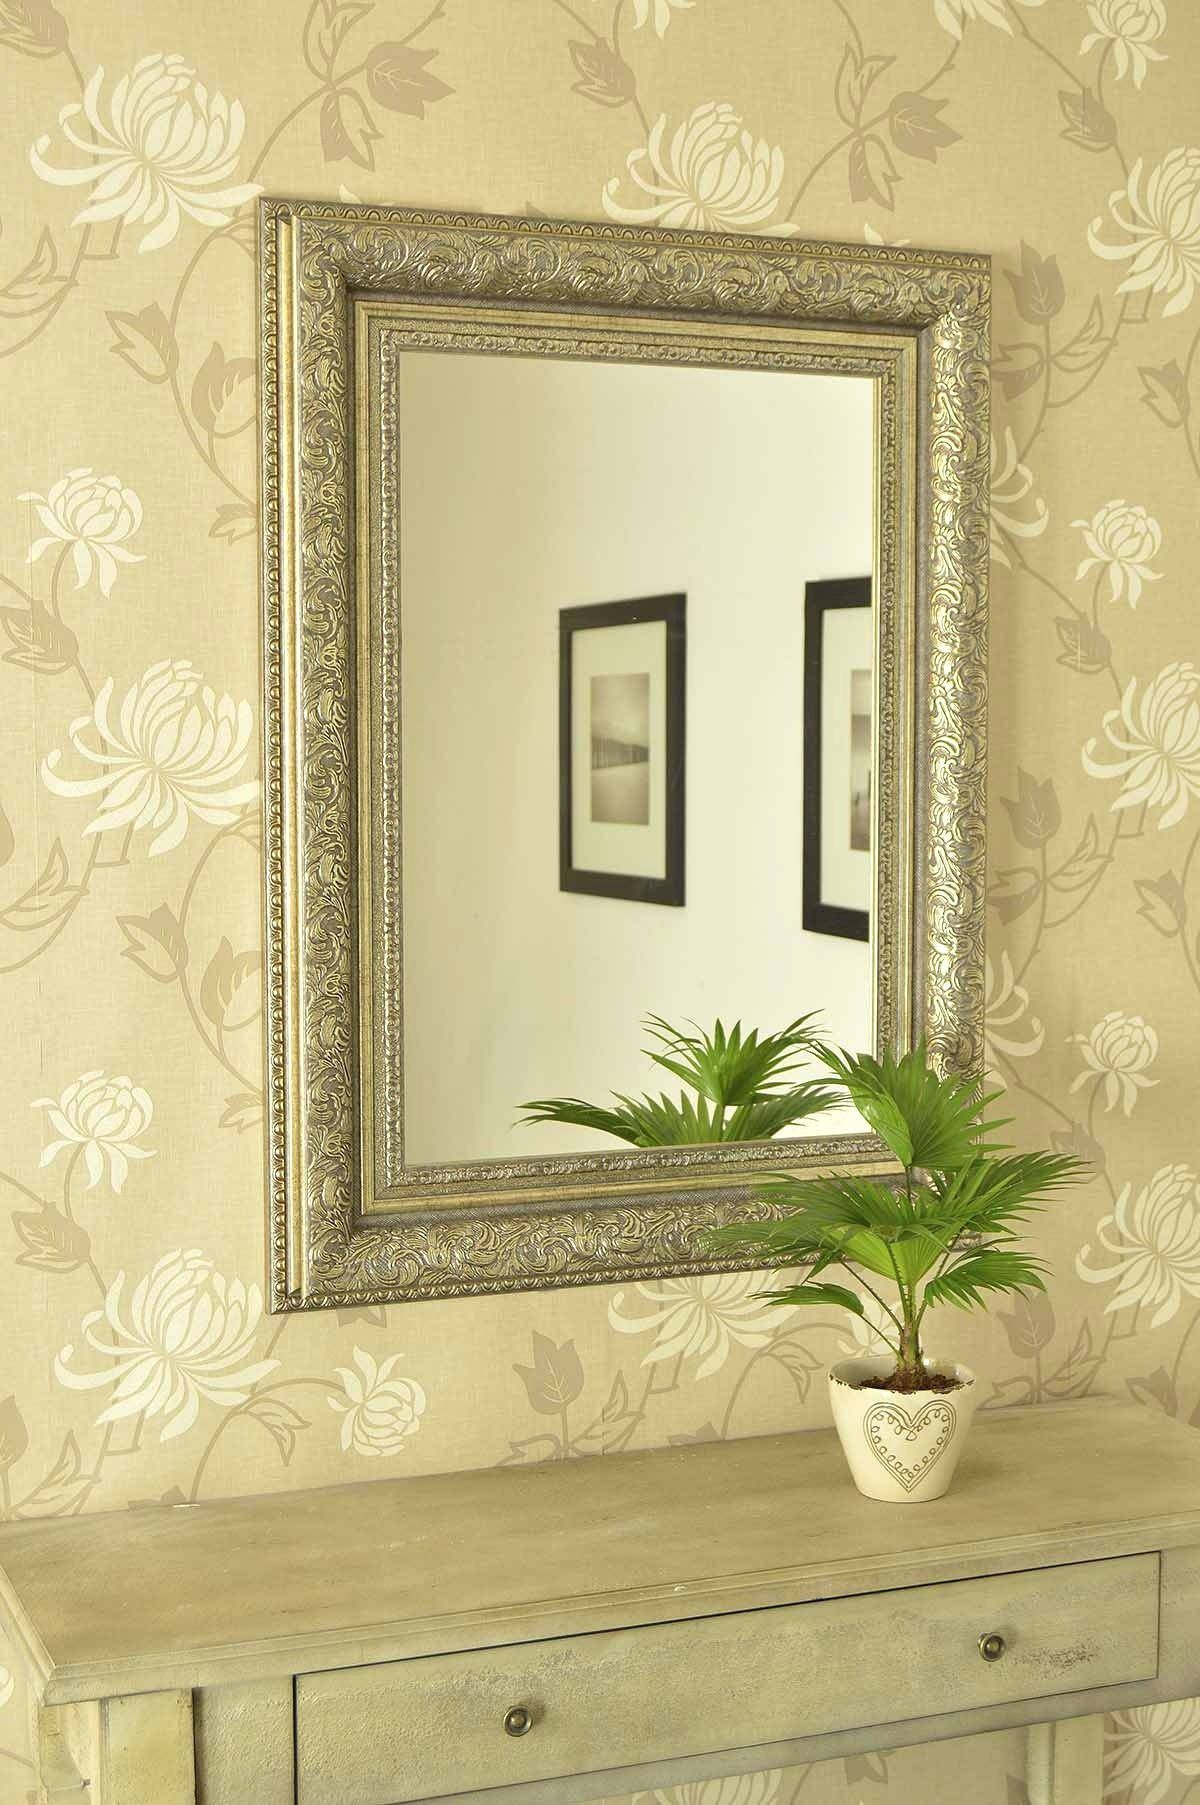 Amazing Wall Mirror Ideas Pictures Inspiration - The Wall Art ...